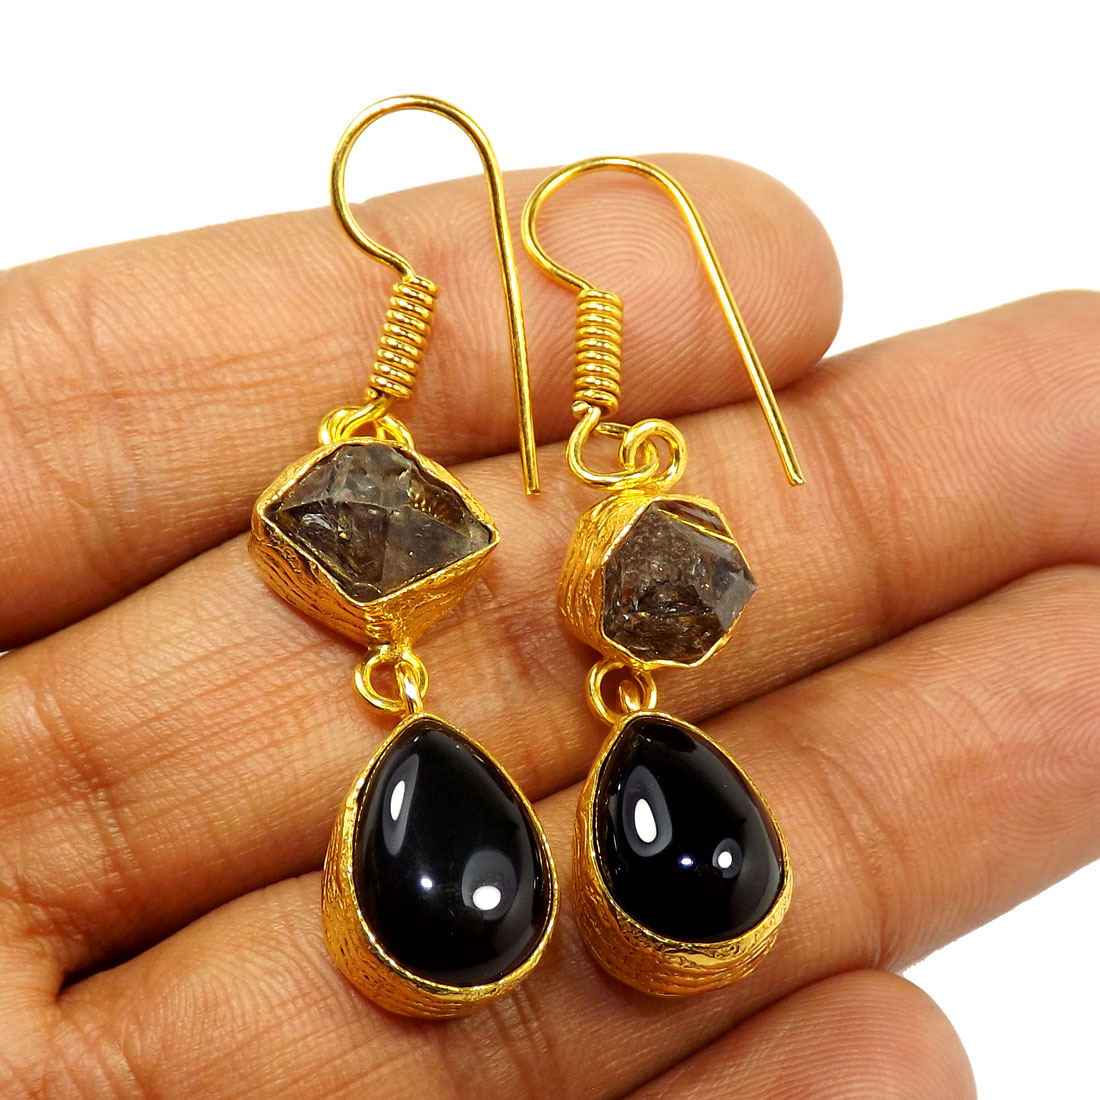 Herkimer Diamond & Black Onyx Cut F - PBE951-Exclusive Two rough Rough Stone Handmade Wholesale Earrings